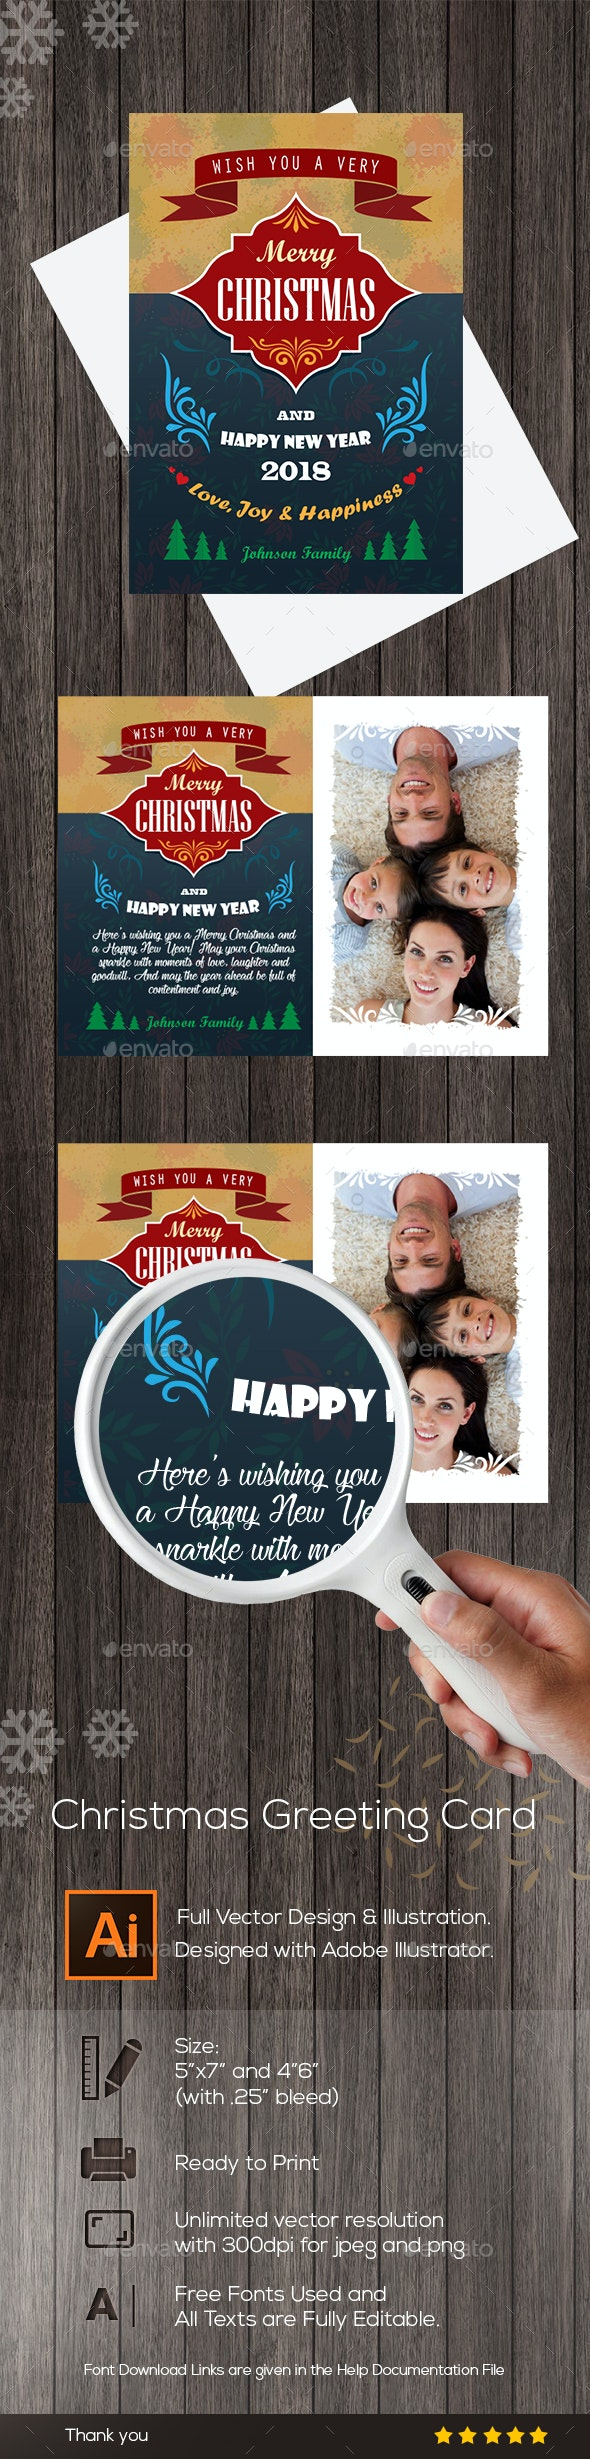 Christmas Greeting Card Vector Design - Holiday Greeting Cards